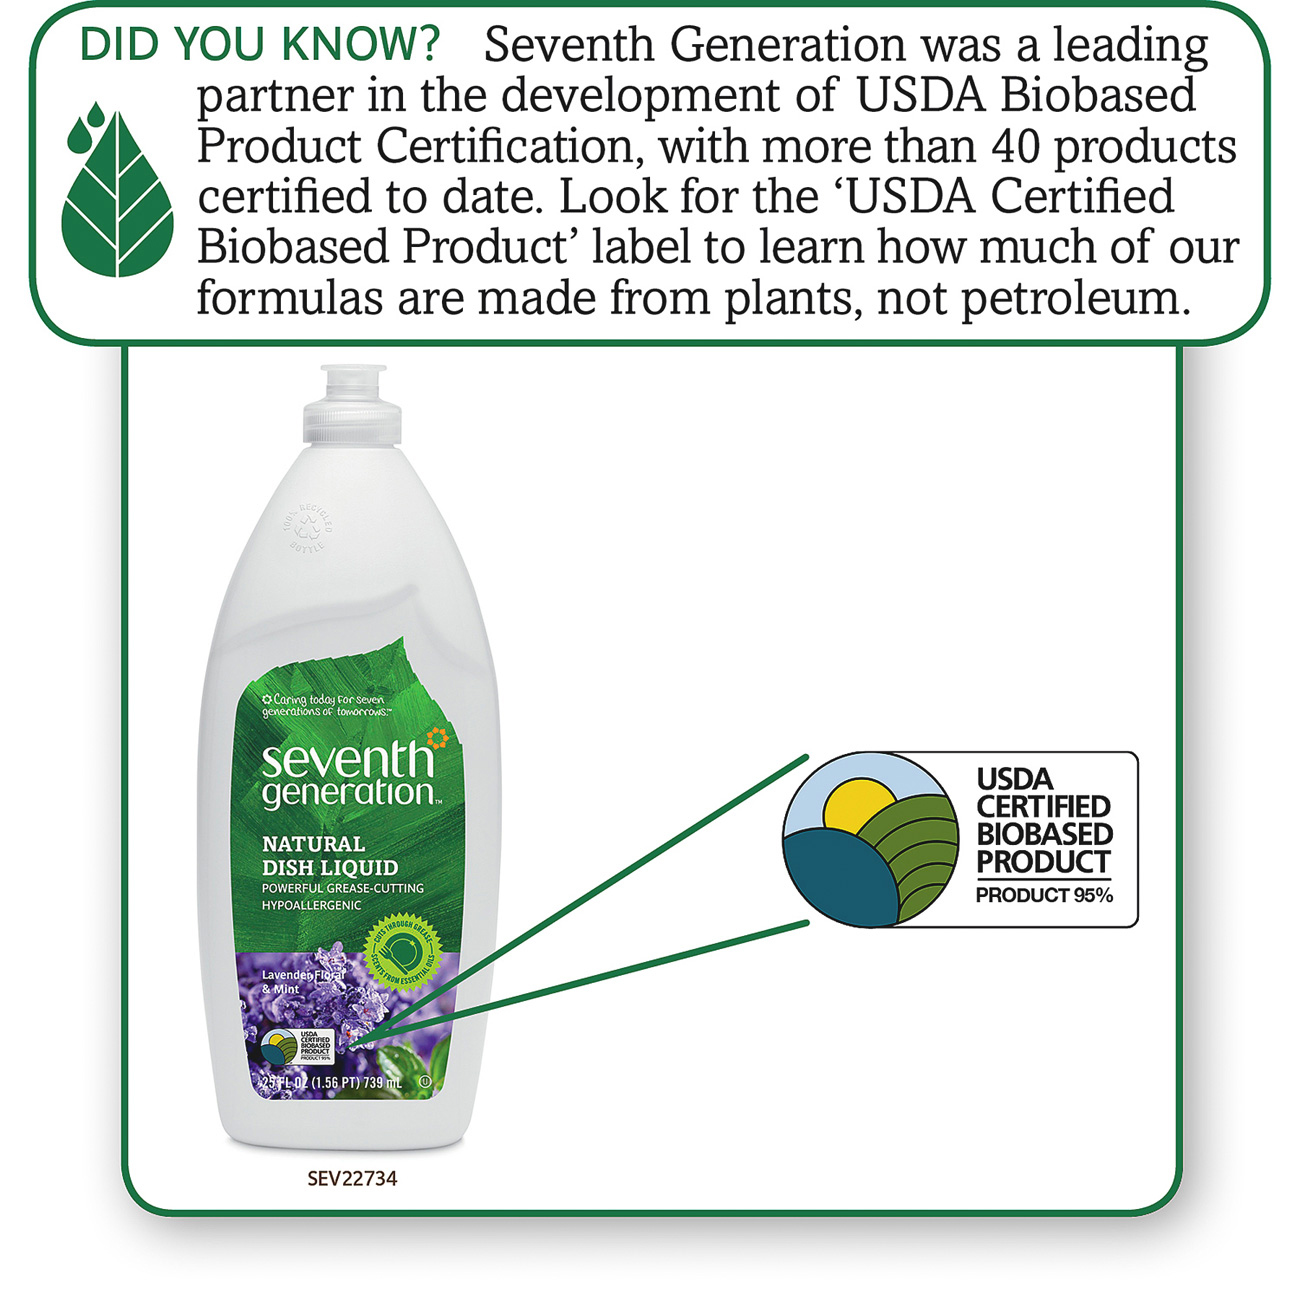 Mint Cleaning Services Home: Seventh Generation Lavender/Mint